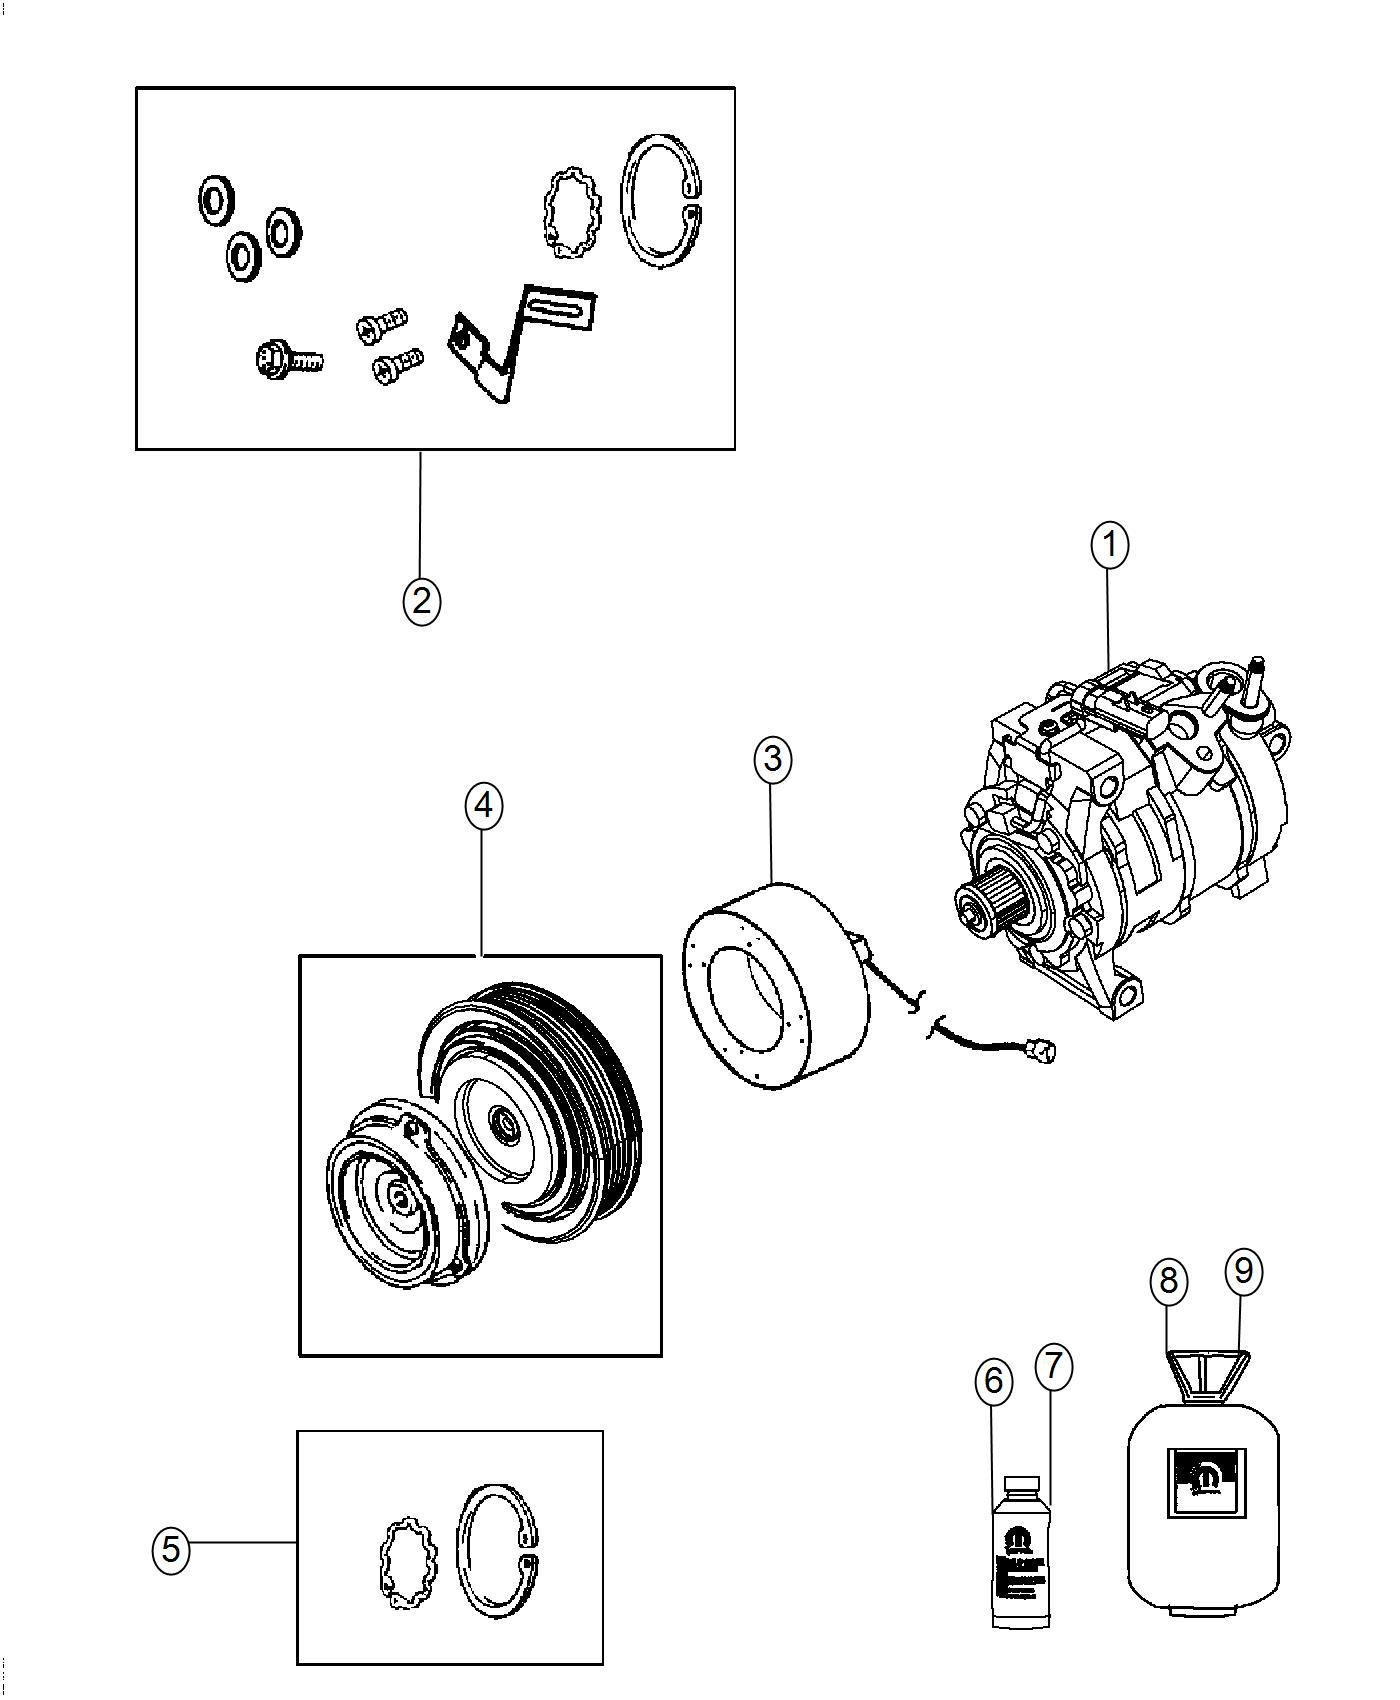 2016 Dodge Challenger Coil. Air conditioning clutch